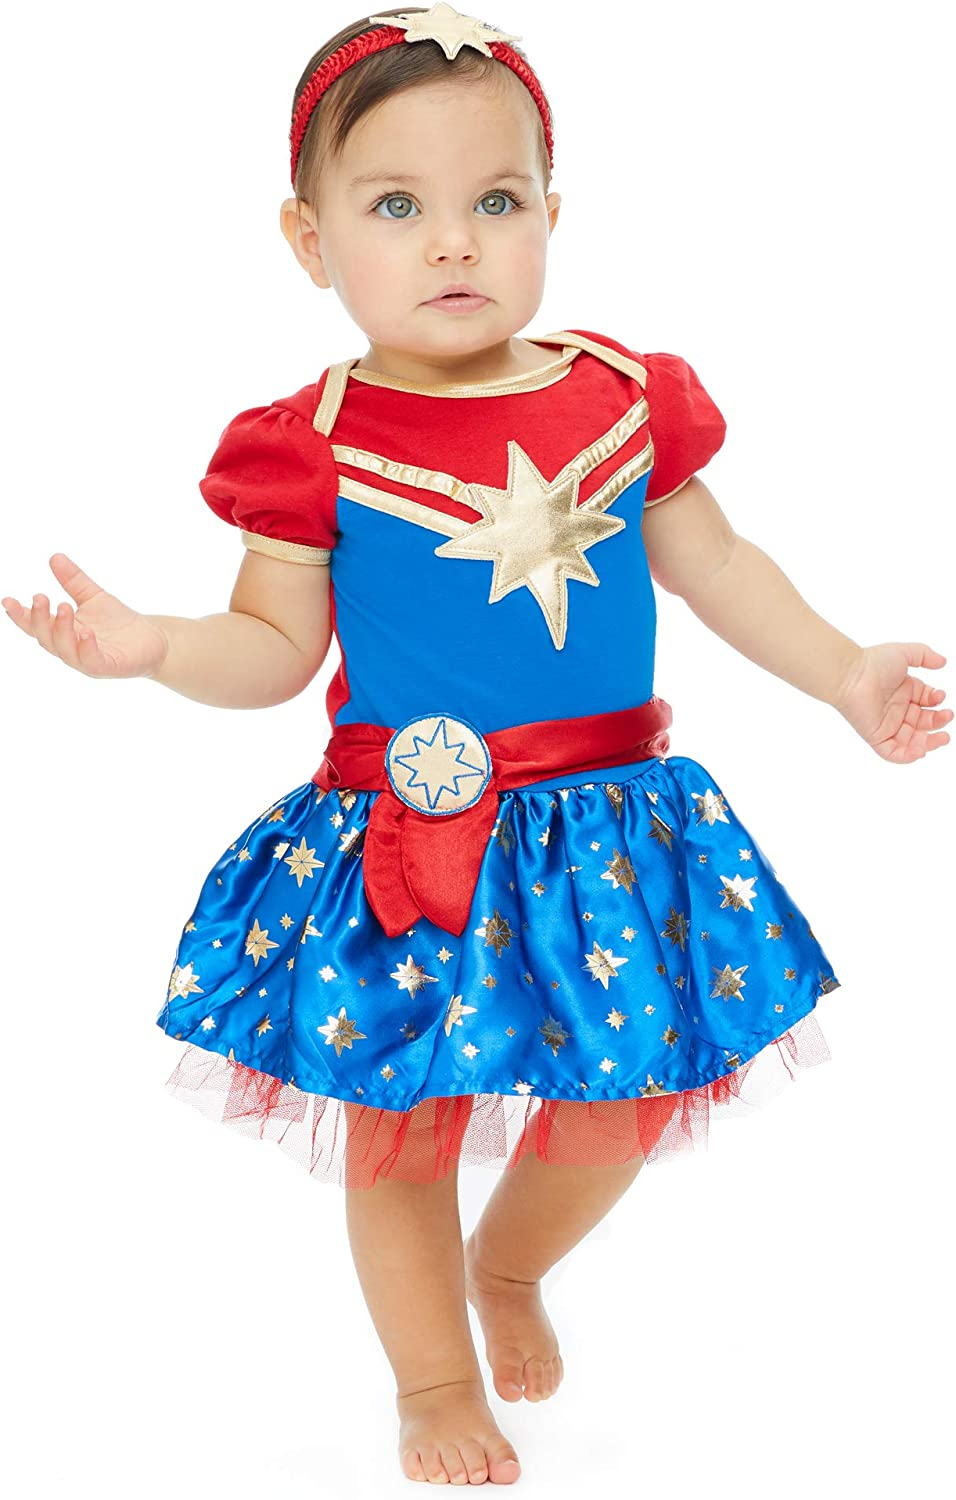 Amazon Com Captain Marvel Girls Short Sleeve Costume Dress Headband Superhero Cosplay Clothing From captain america and spiderman to hulk and wolverine, we have what you're looking for. captain marvel girls short sleeve costume dress headband superhero cosplay